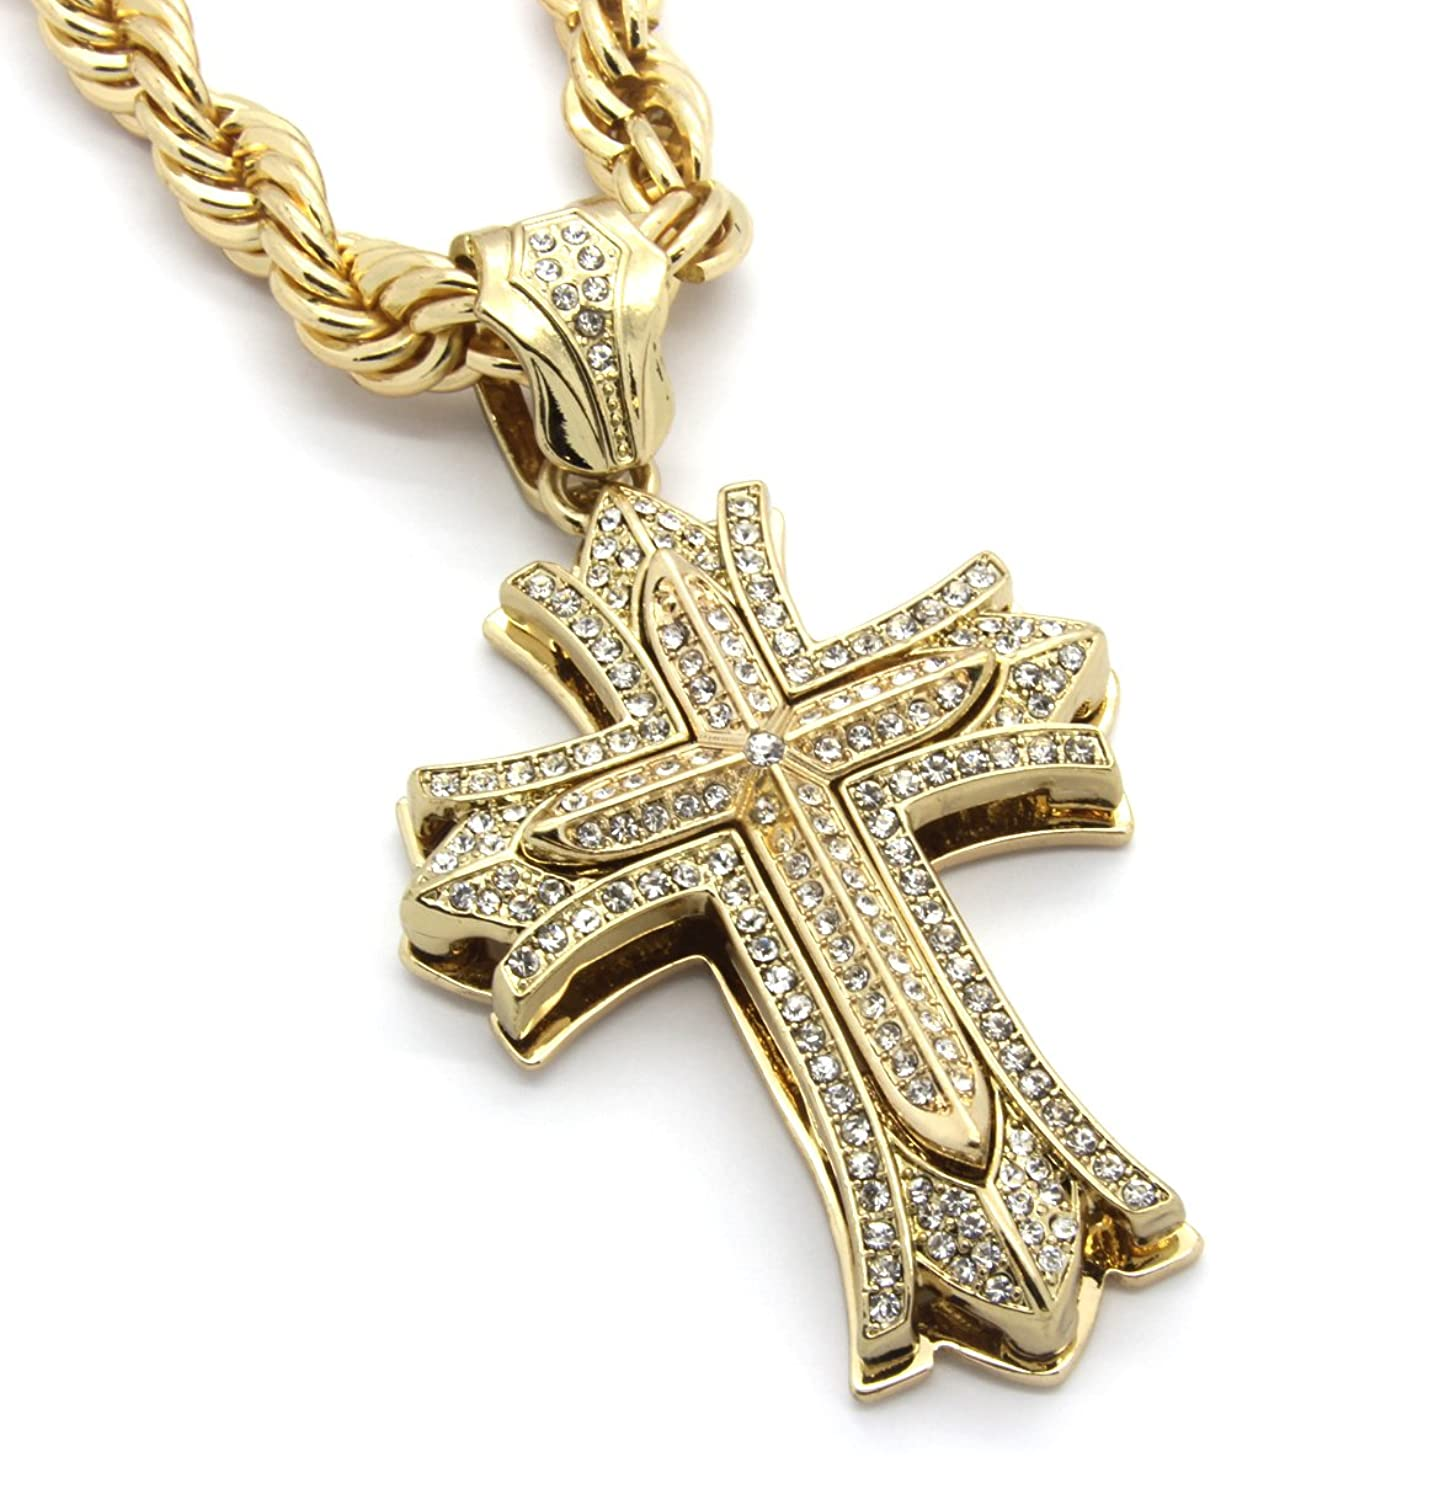 Mens large thick cross gold tone iced out pendant 30 10mm necklace mens large thick cross gold tone iced out pendant 30 10mm necklace rope chain amazon aloadofball Choice Image